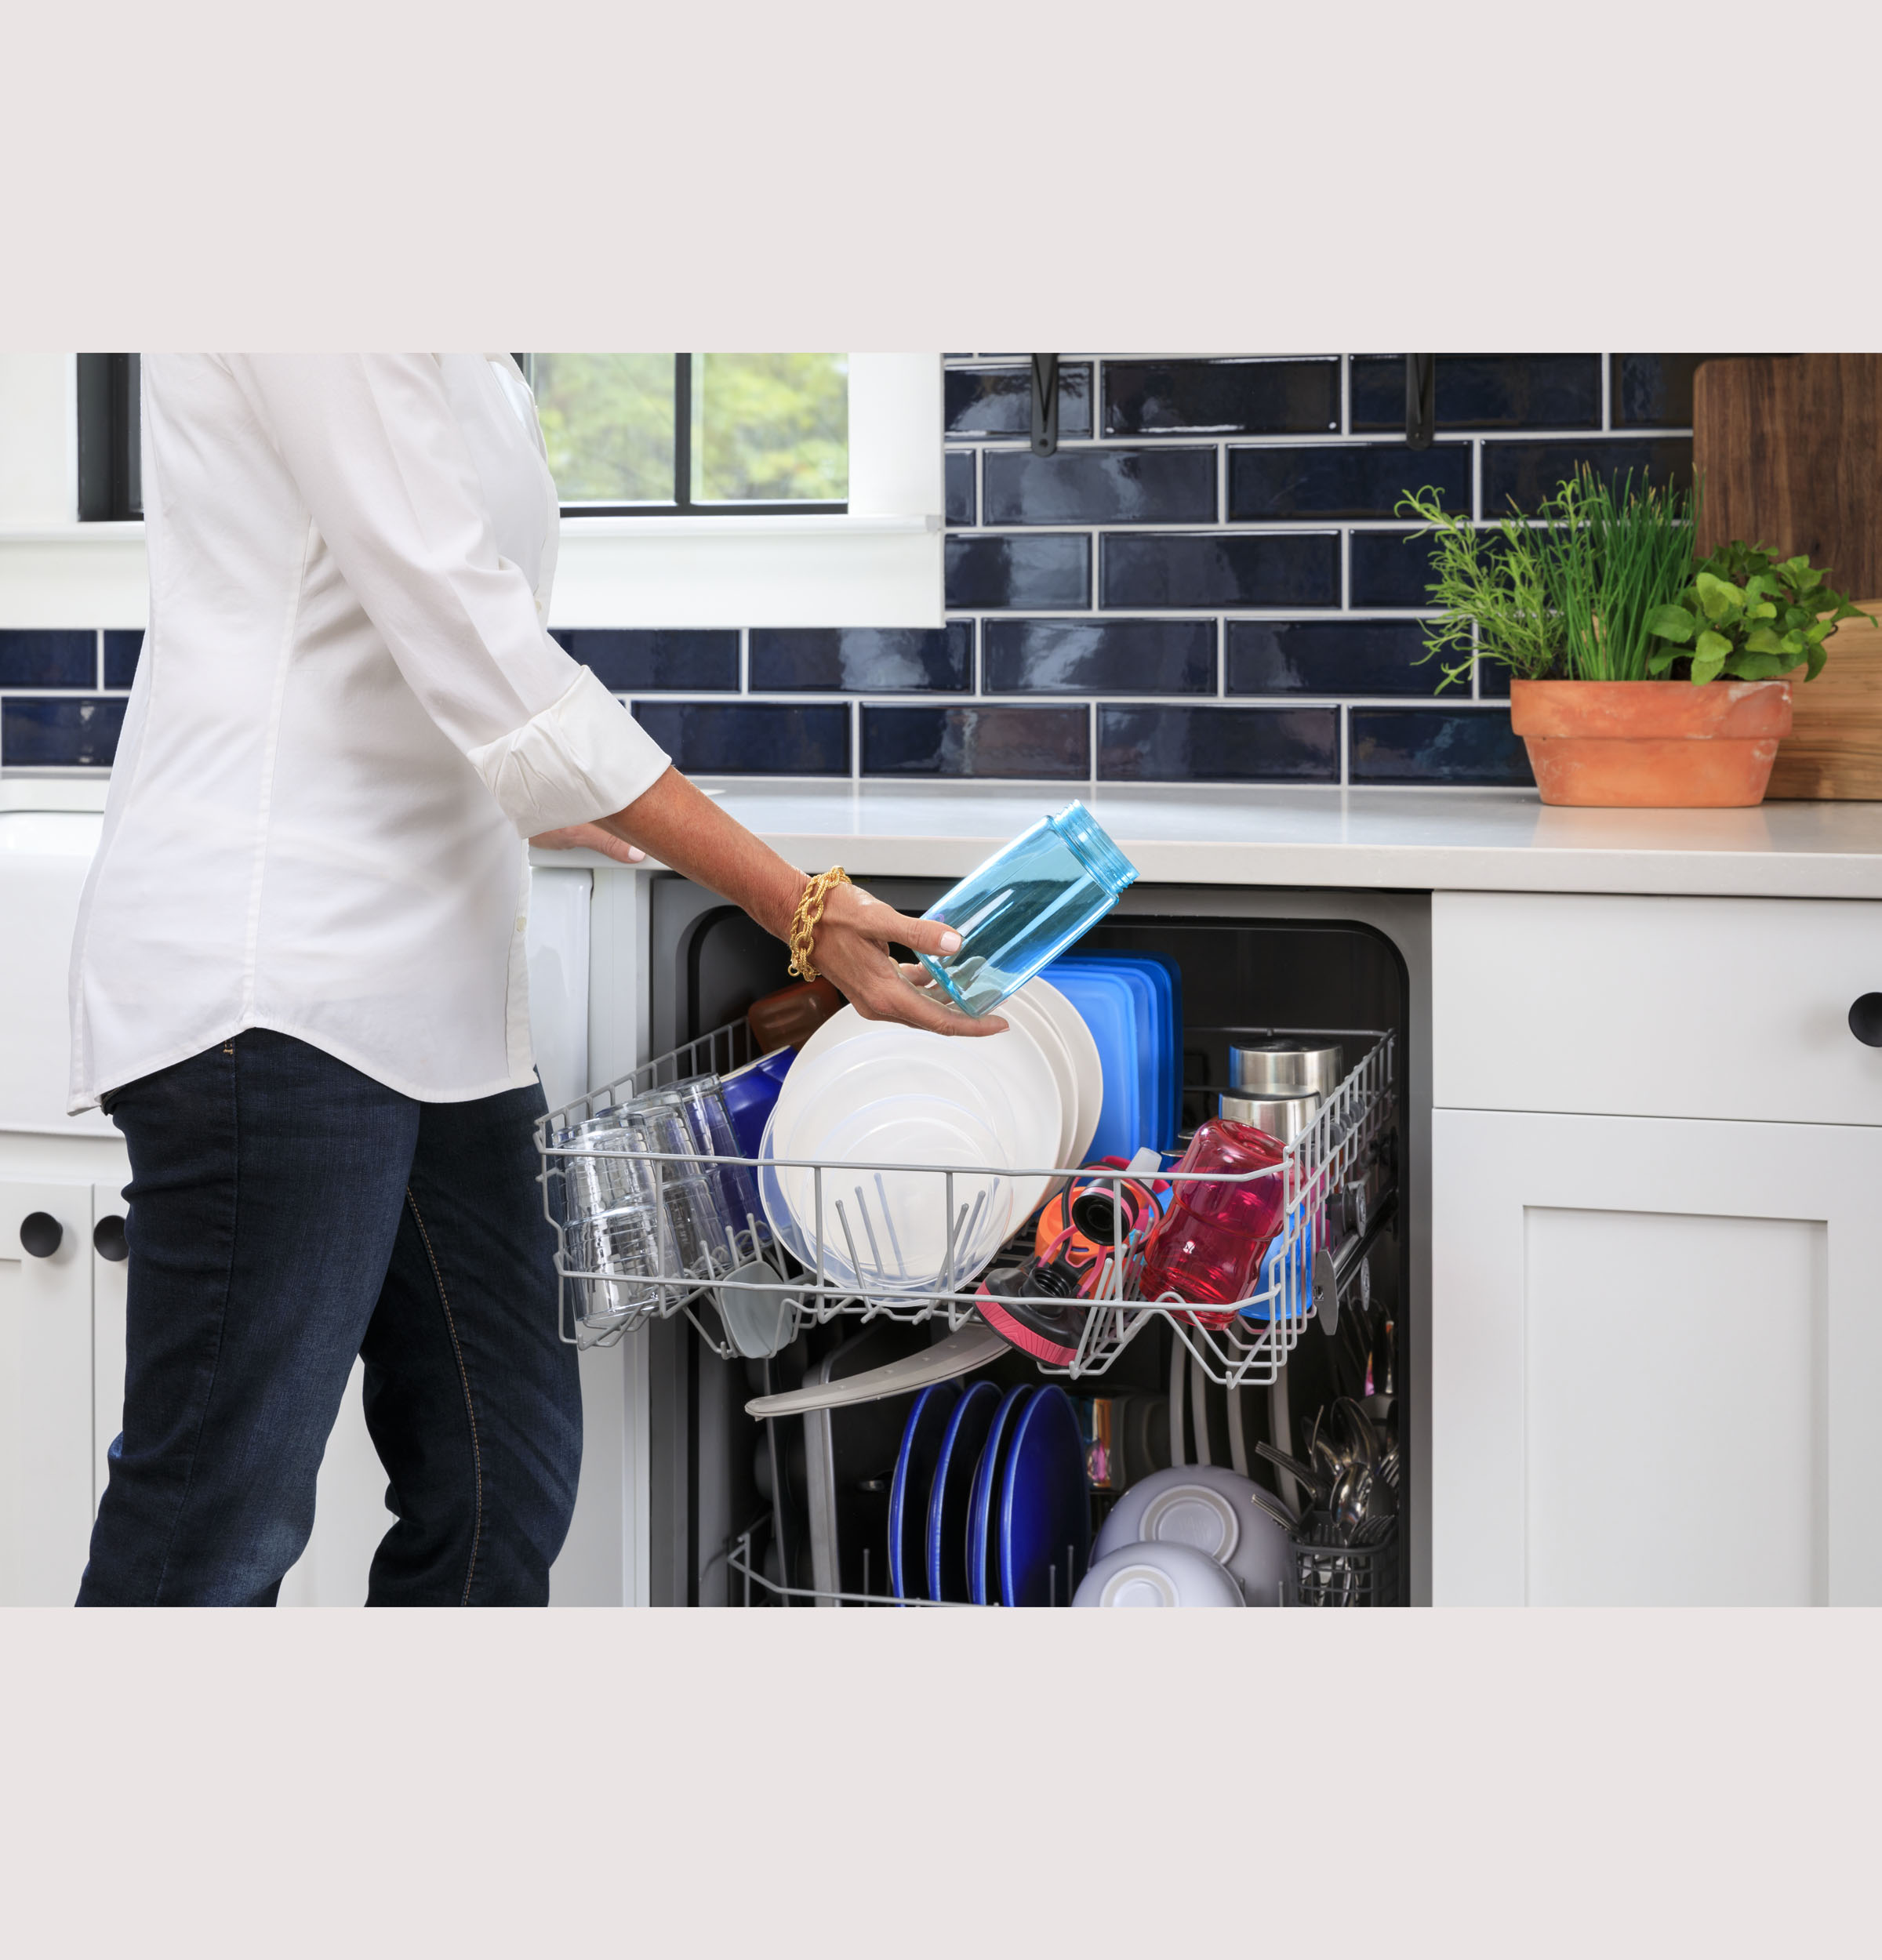 Model: GDF450PGRWW | GE GE® Dishwasher with Front Controls